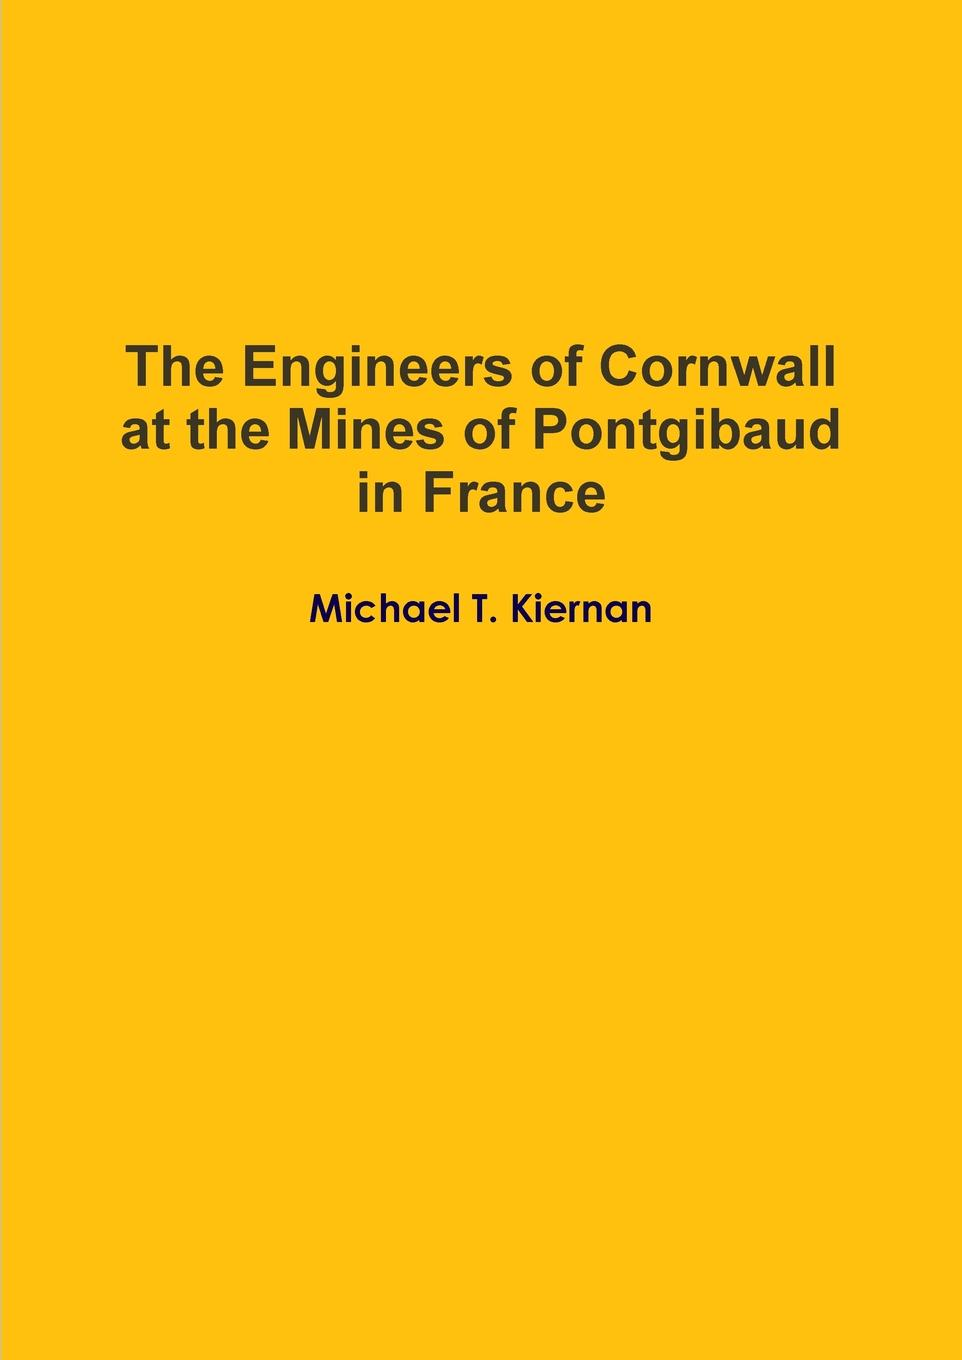 Michael T. Kiernan The Engineers of Cornwall at the Mines of Pontgibaud in France john maclean the parochial and family history of the deanery of trigg minor cornwall